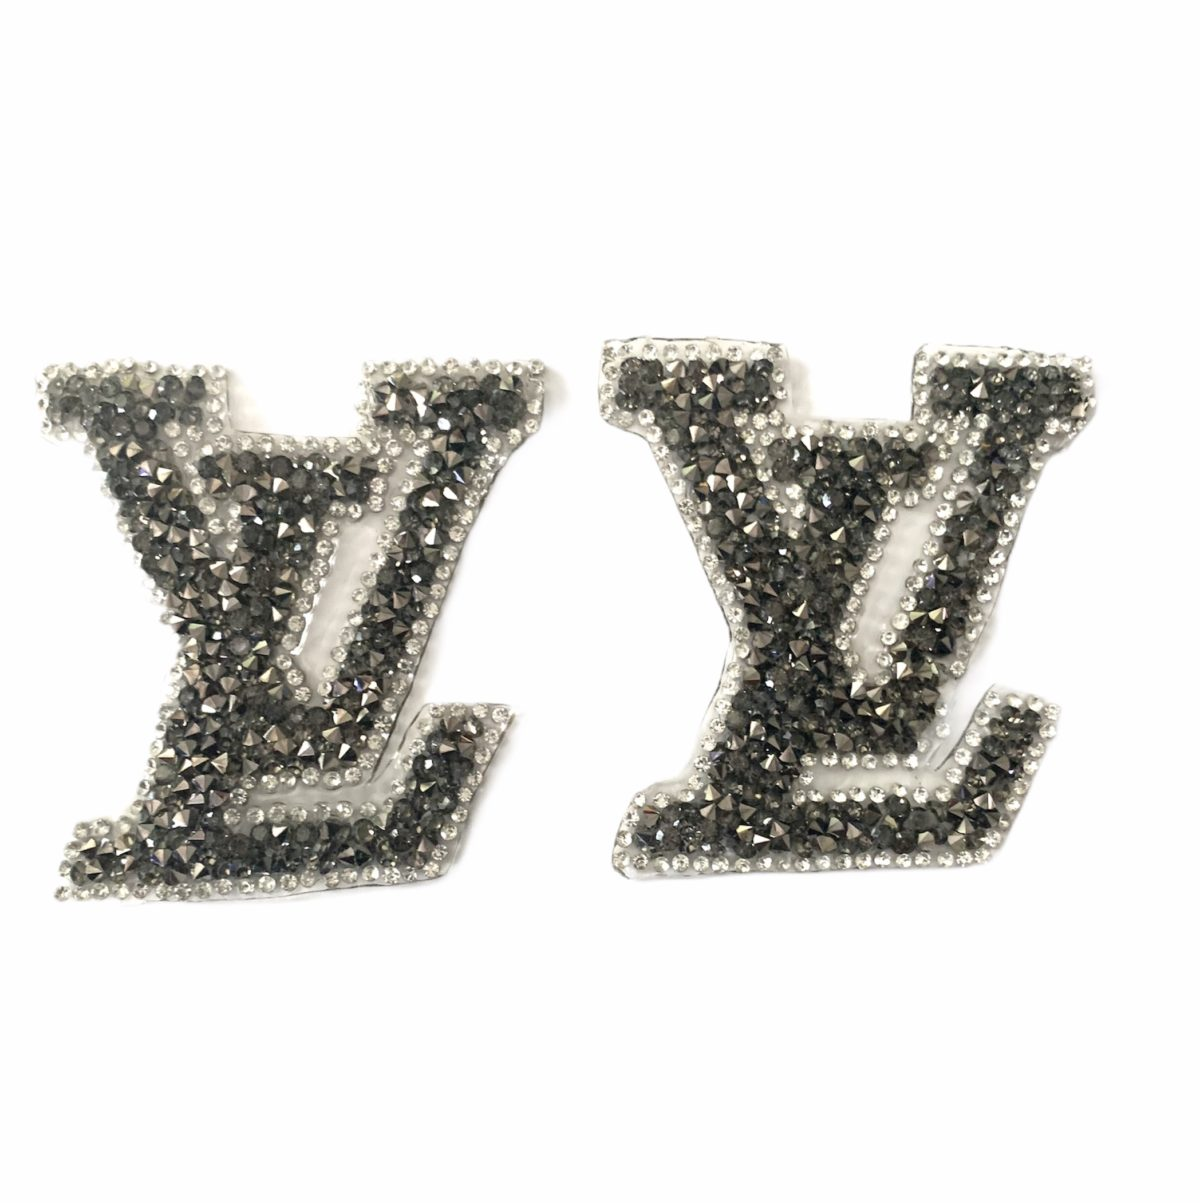 New LV Inspired Bling Patch, Hot fix Iron On Patch 2